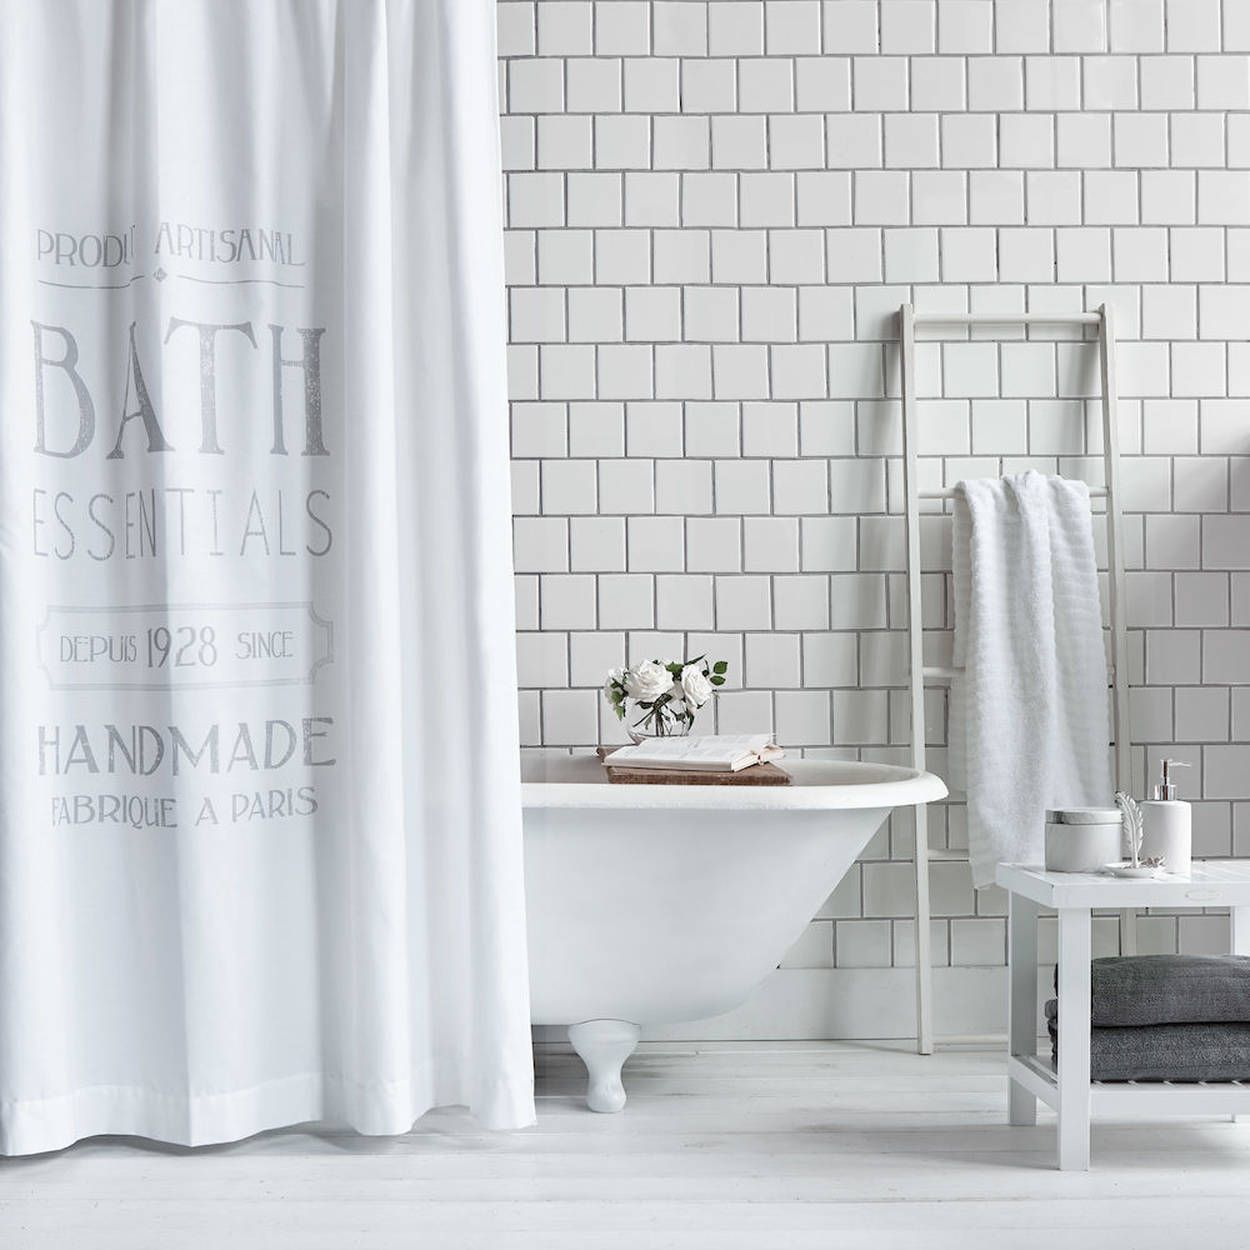 Introduce a little french flair to your salle de bain with this